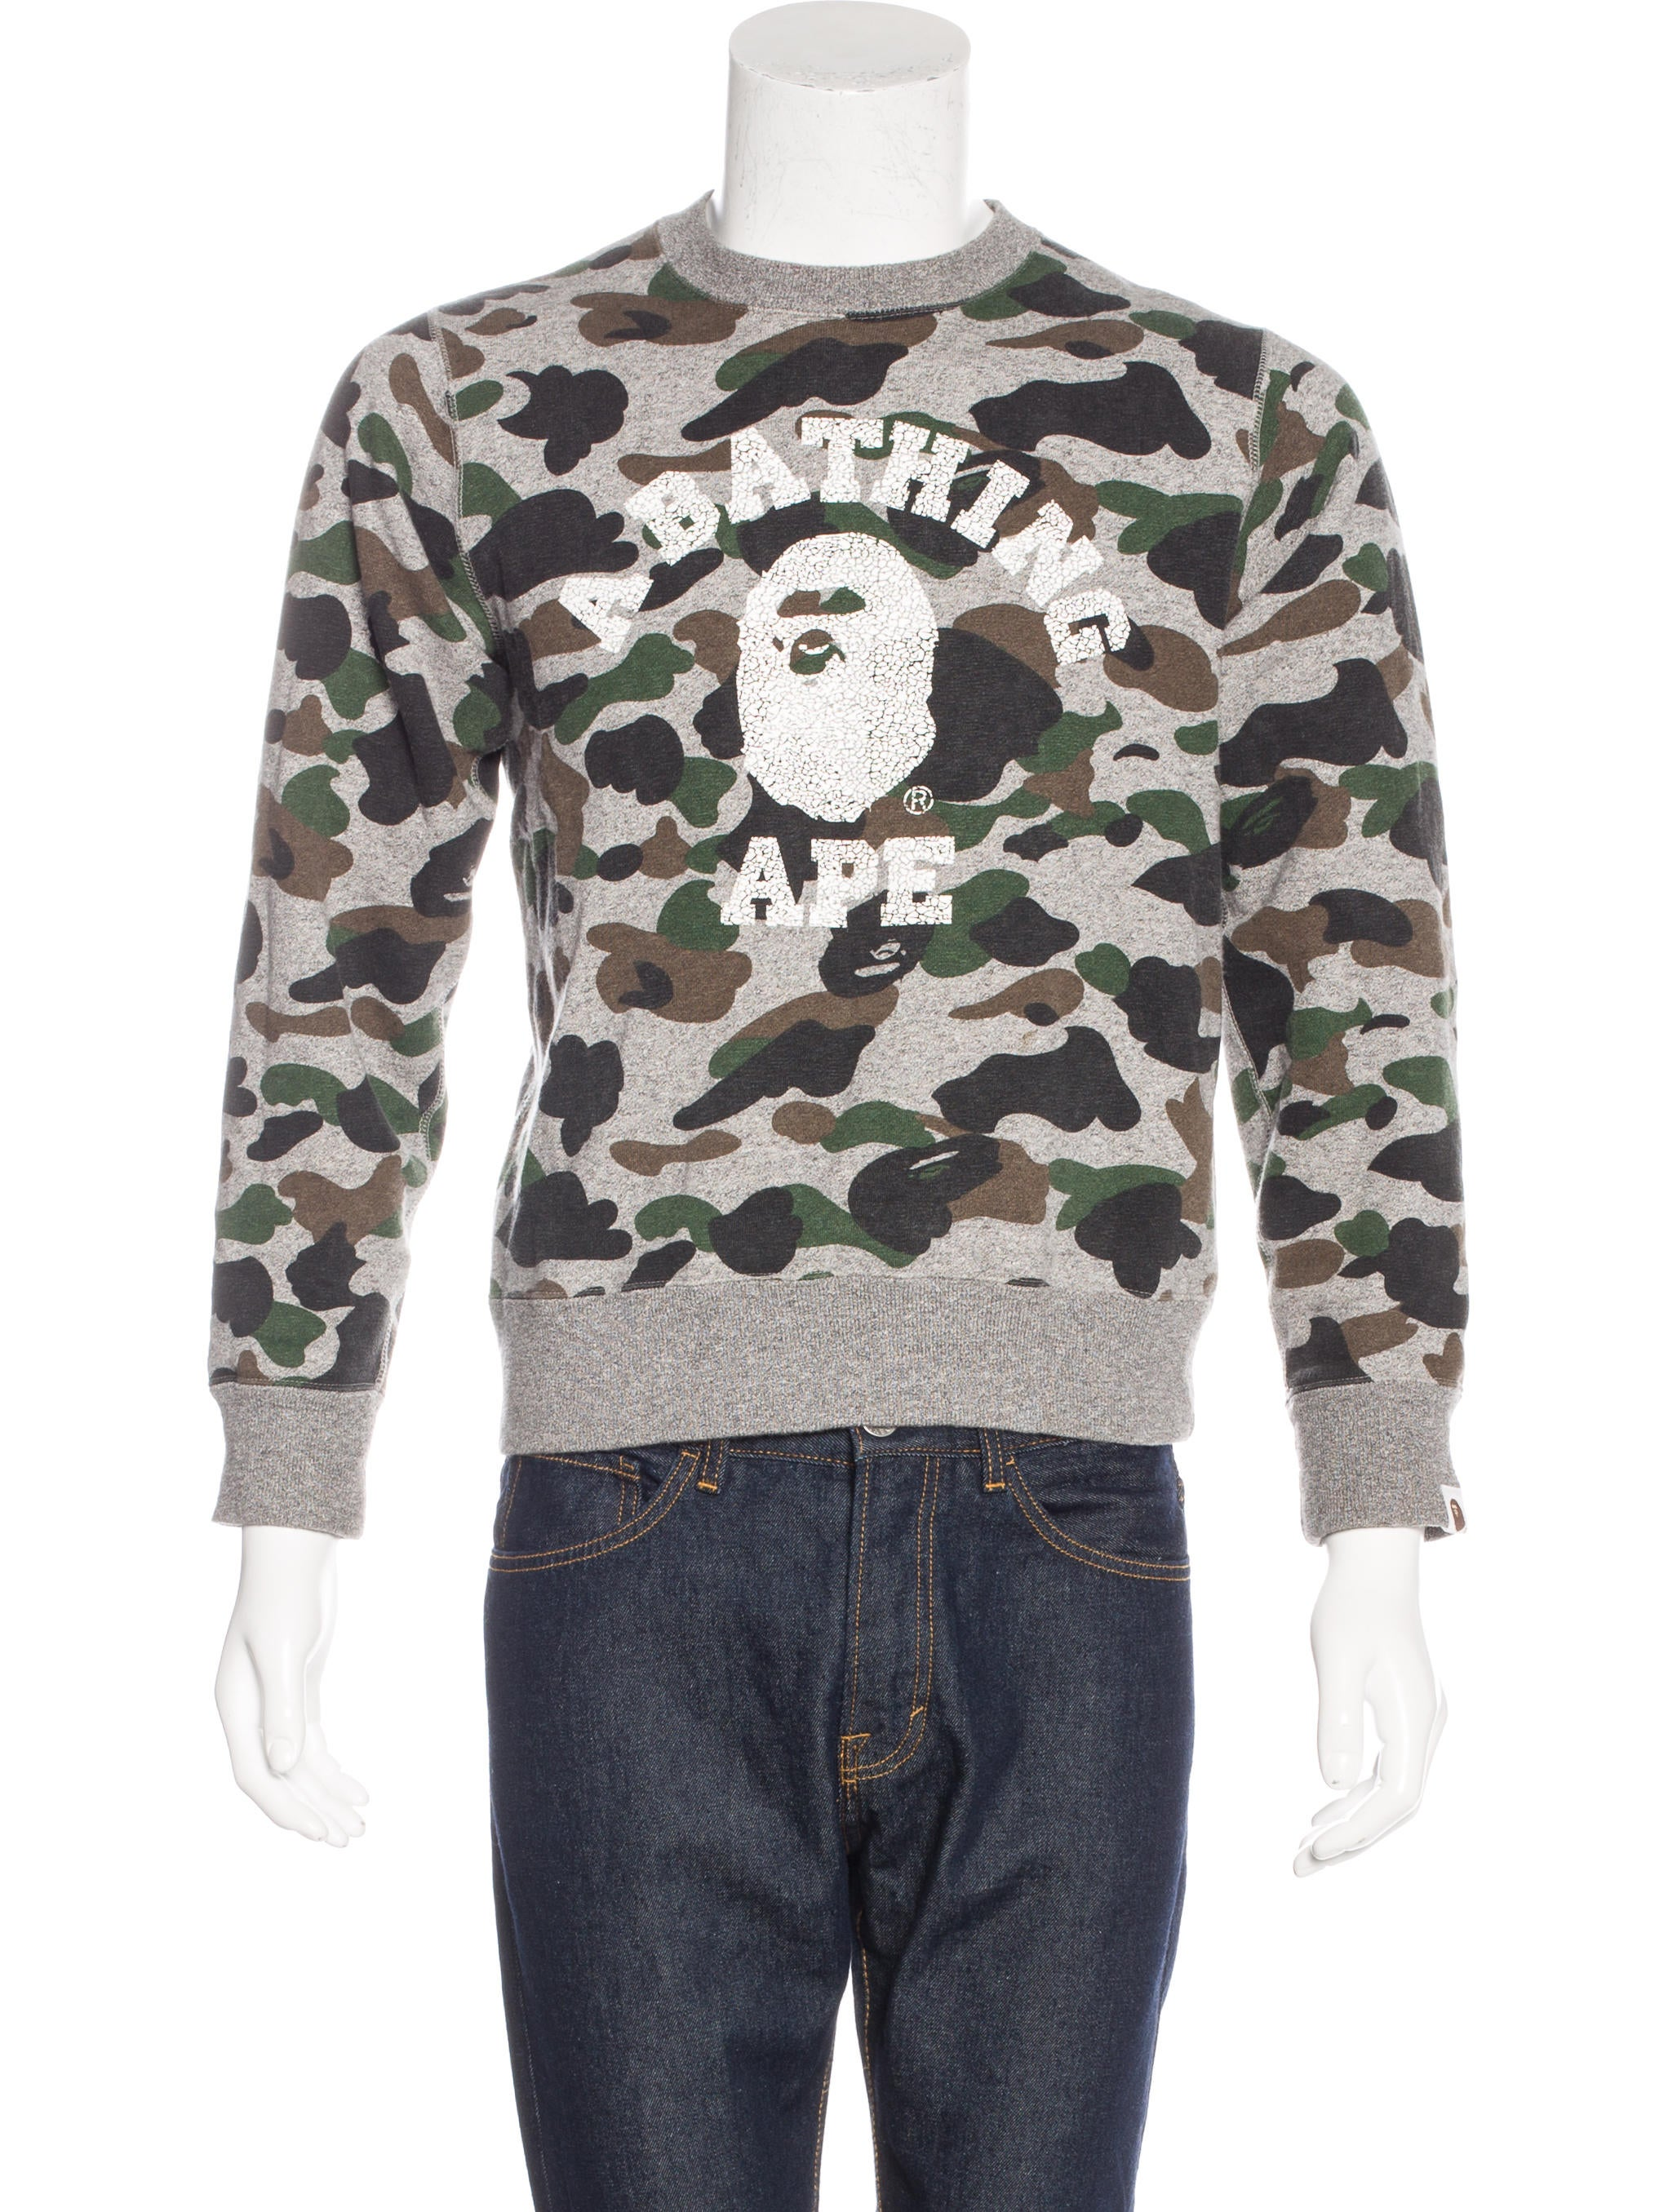 69341f09db28 A Bathing Ape Bape Camo Sweatshirt - Clothing - WBATP20066